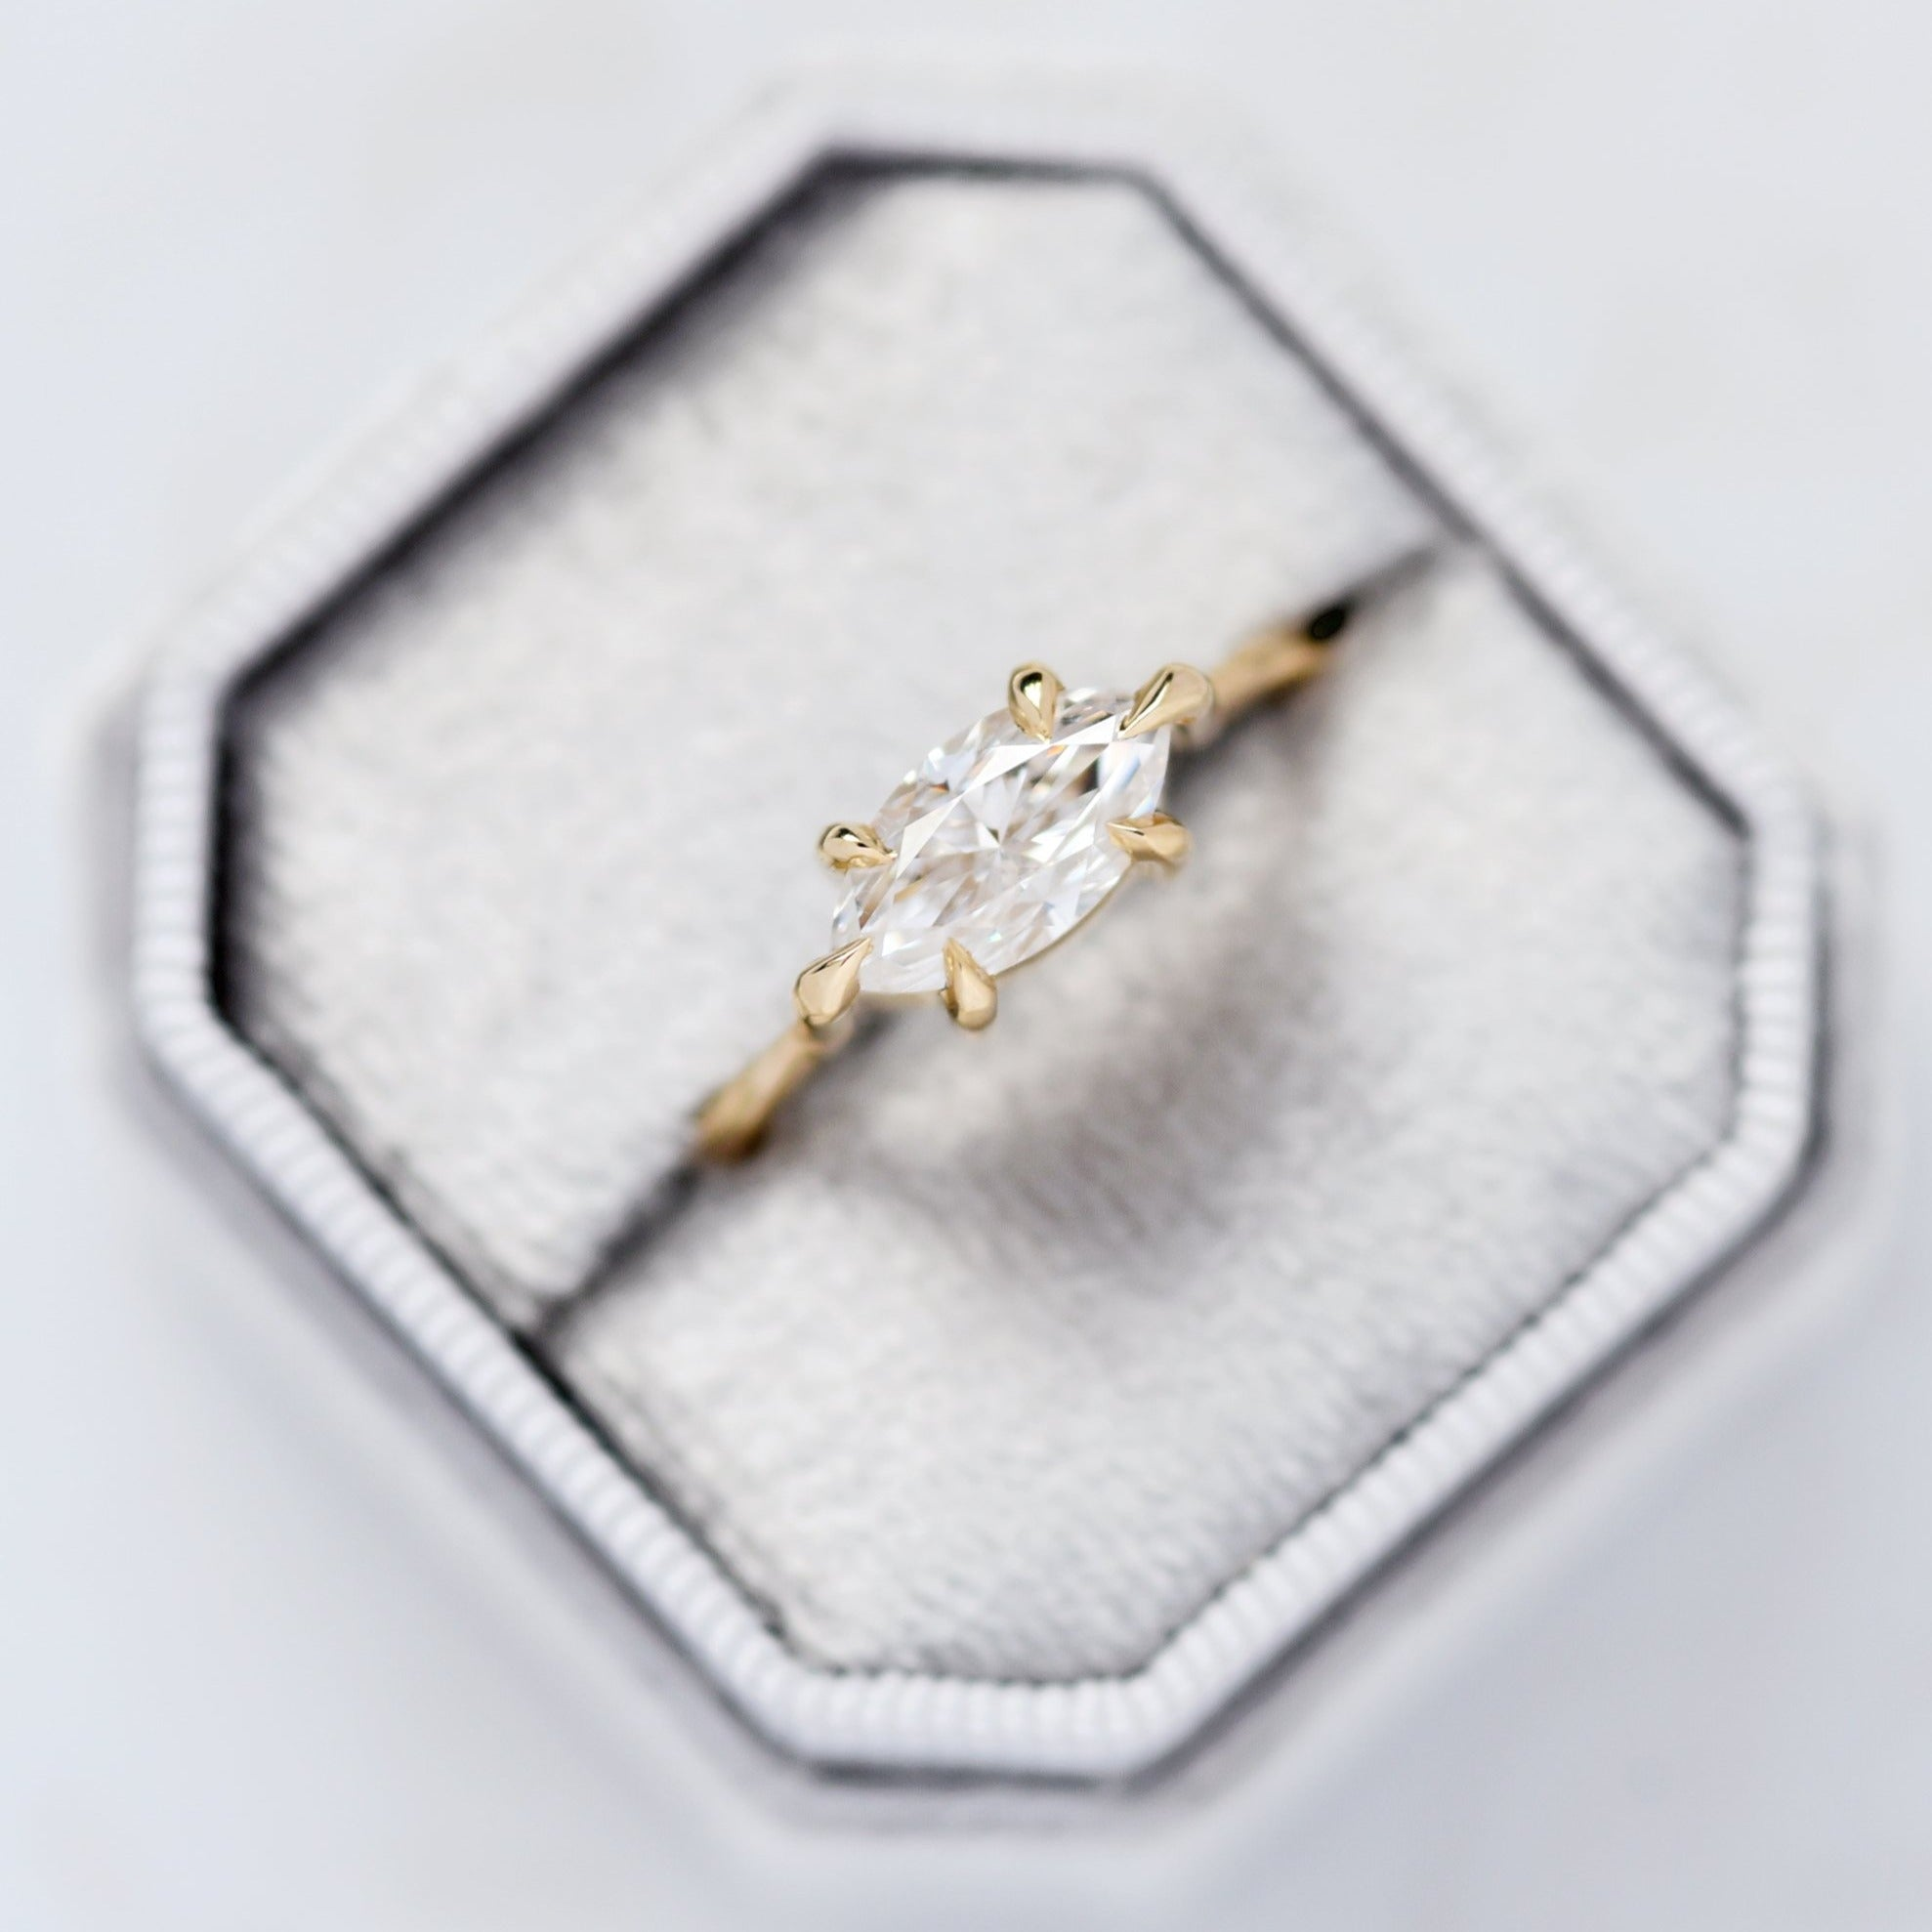 Marquise Moissanite Engagement Ring in yellow gold